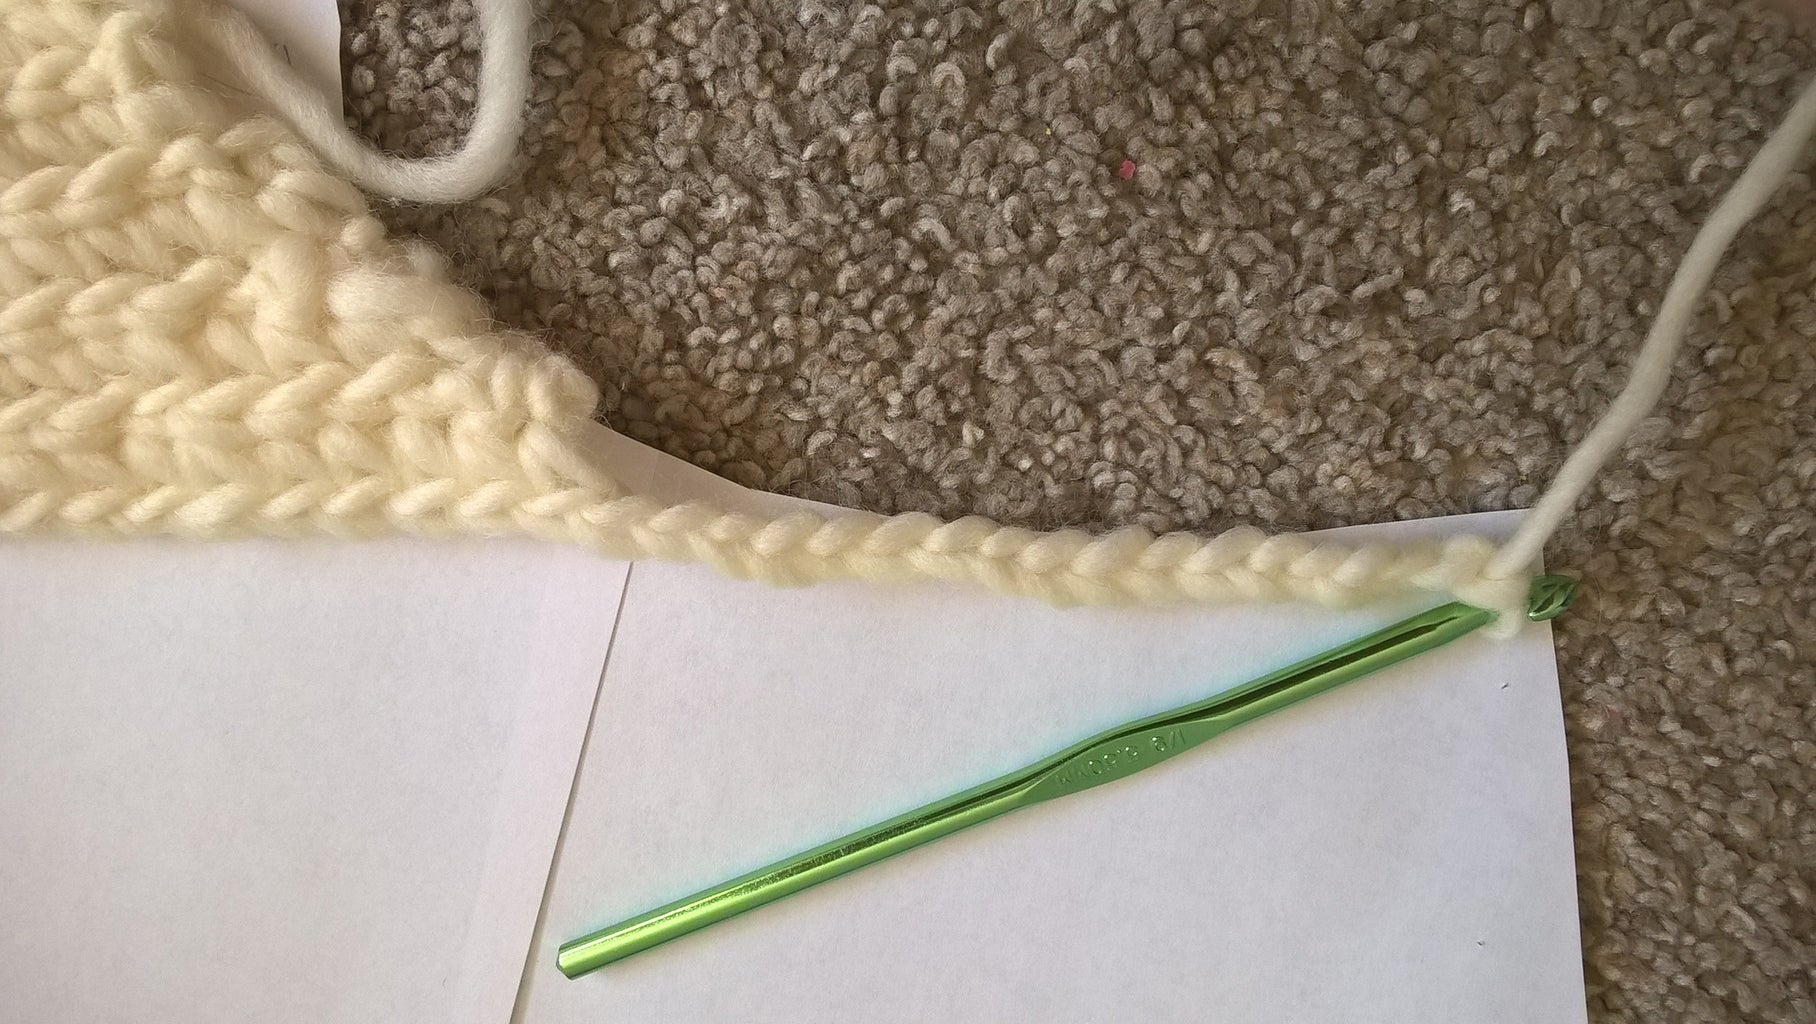 Crocheting the Front Panel